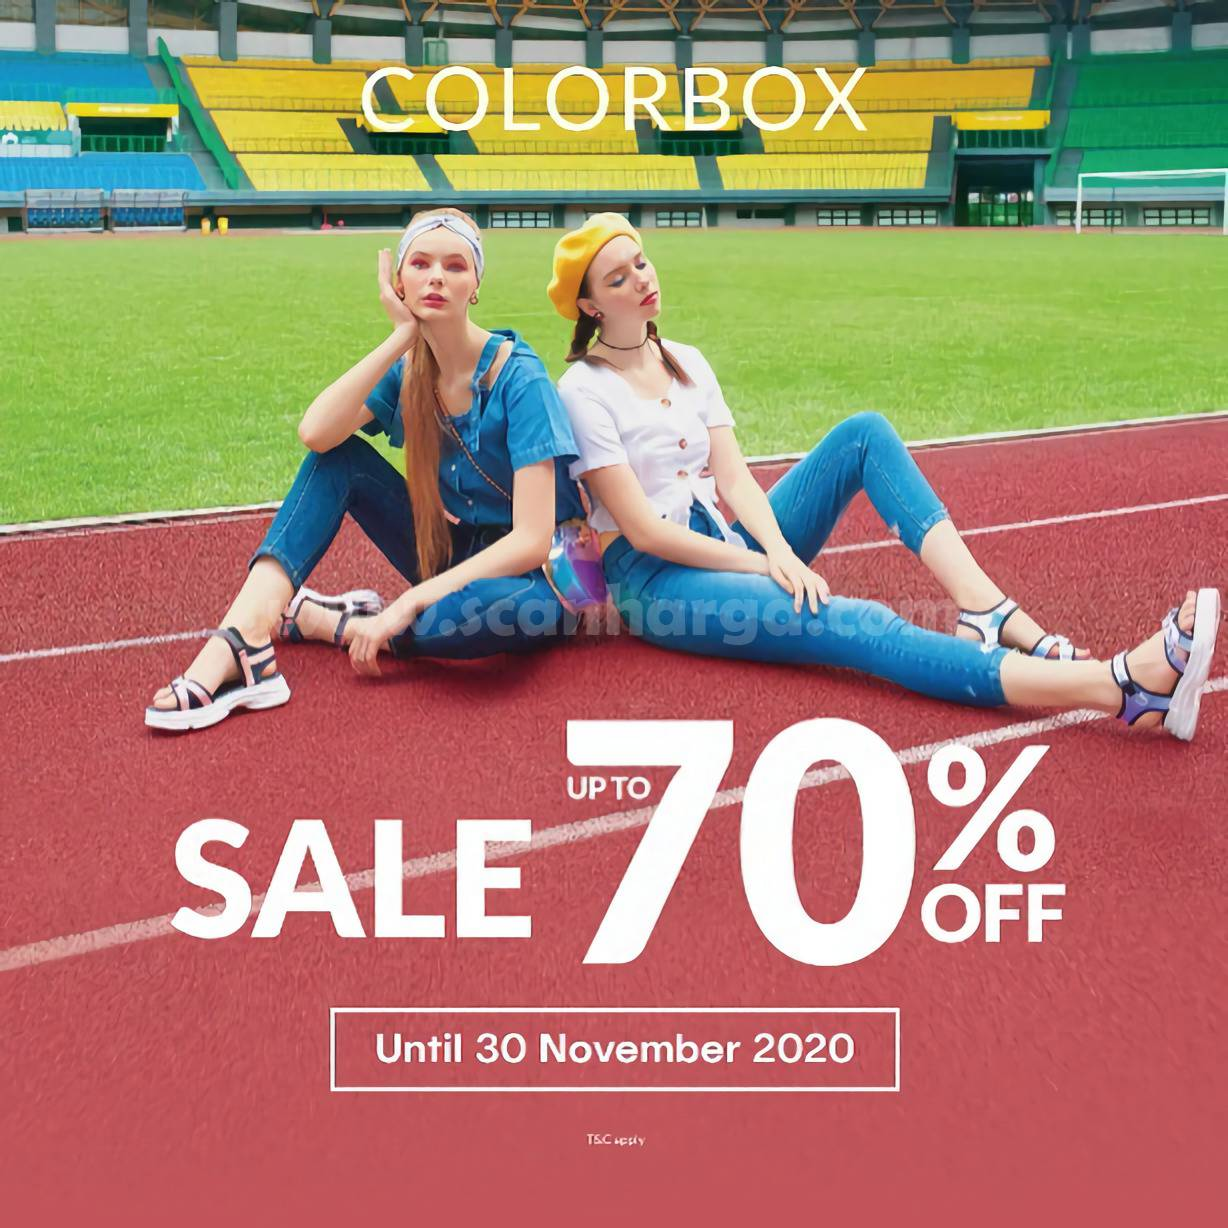 Promo ColorBox Sale up to 70% off*